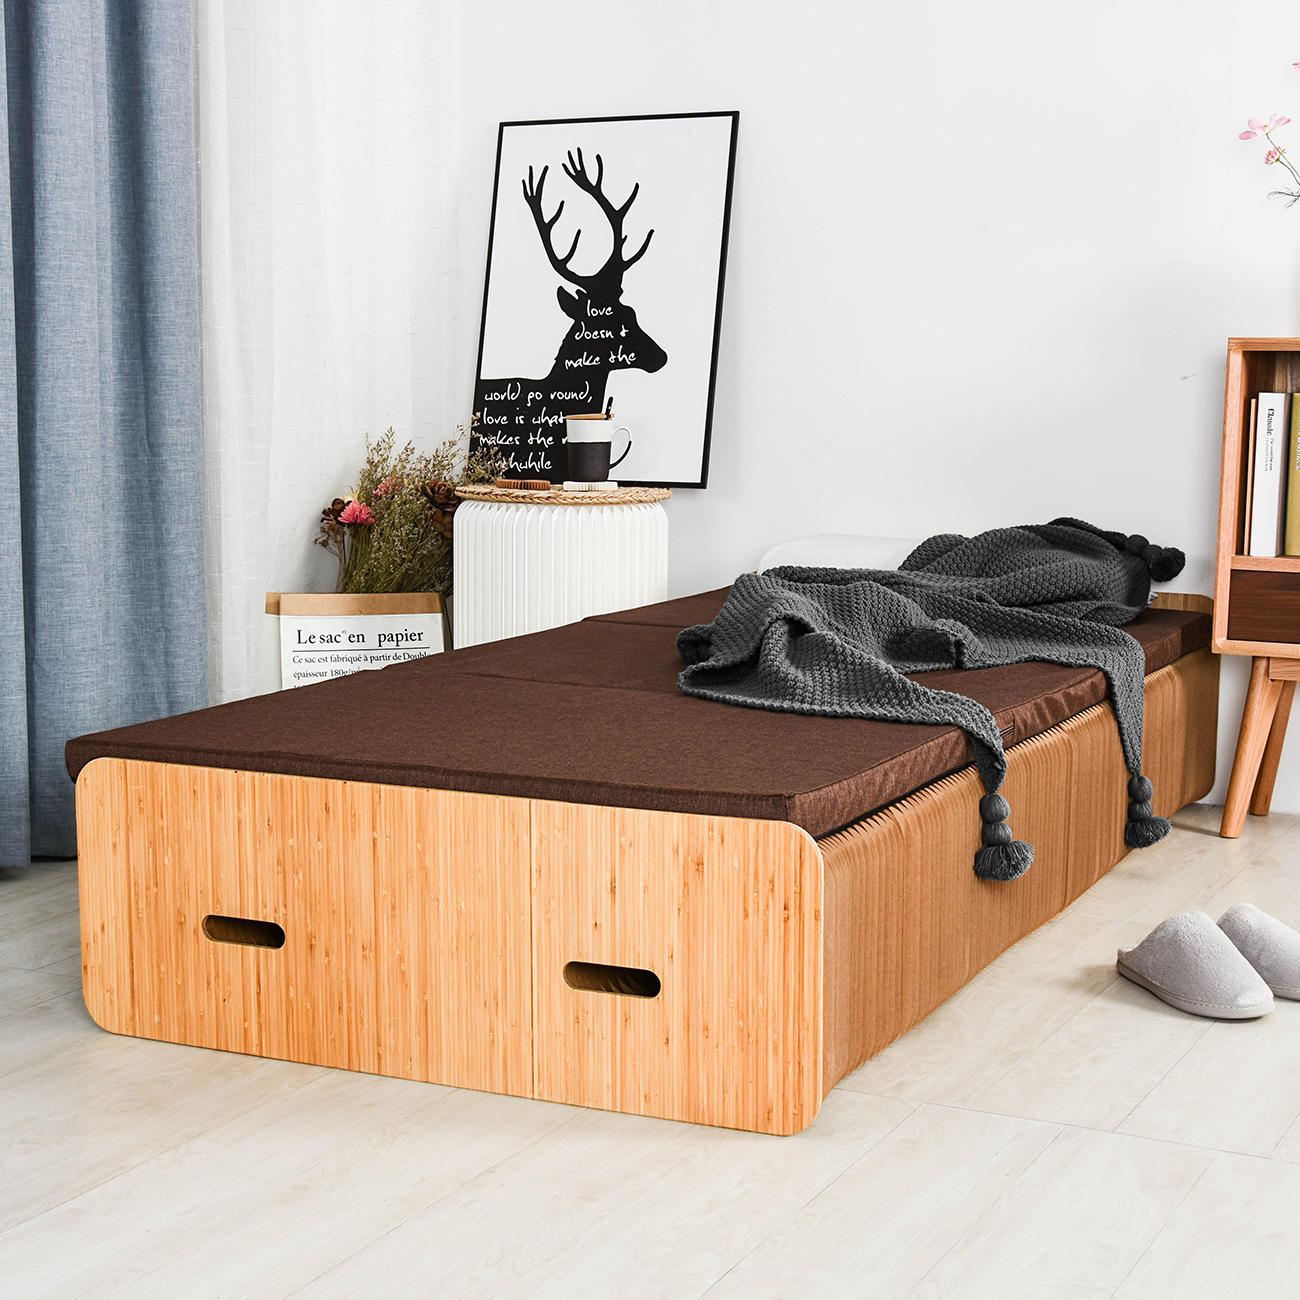 A pull-out bed made of accordioning paper